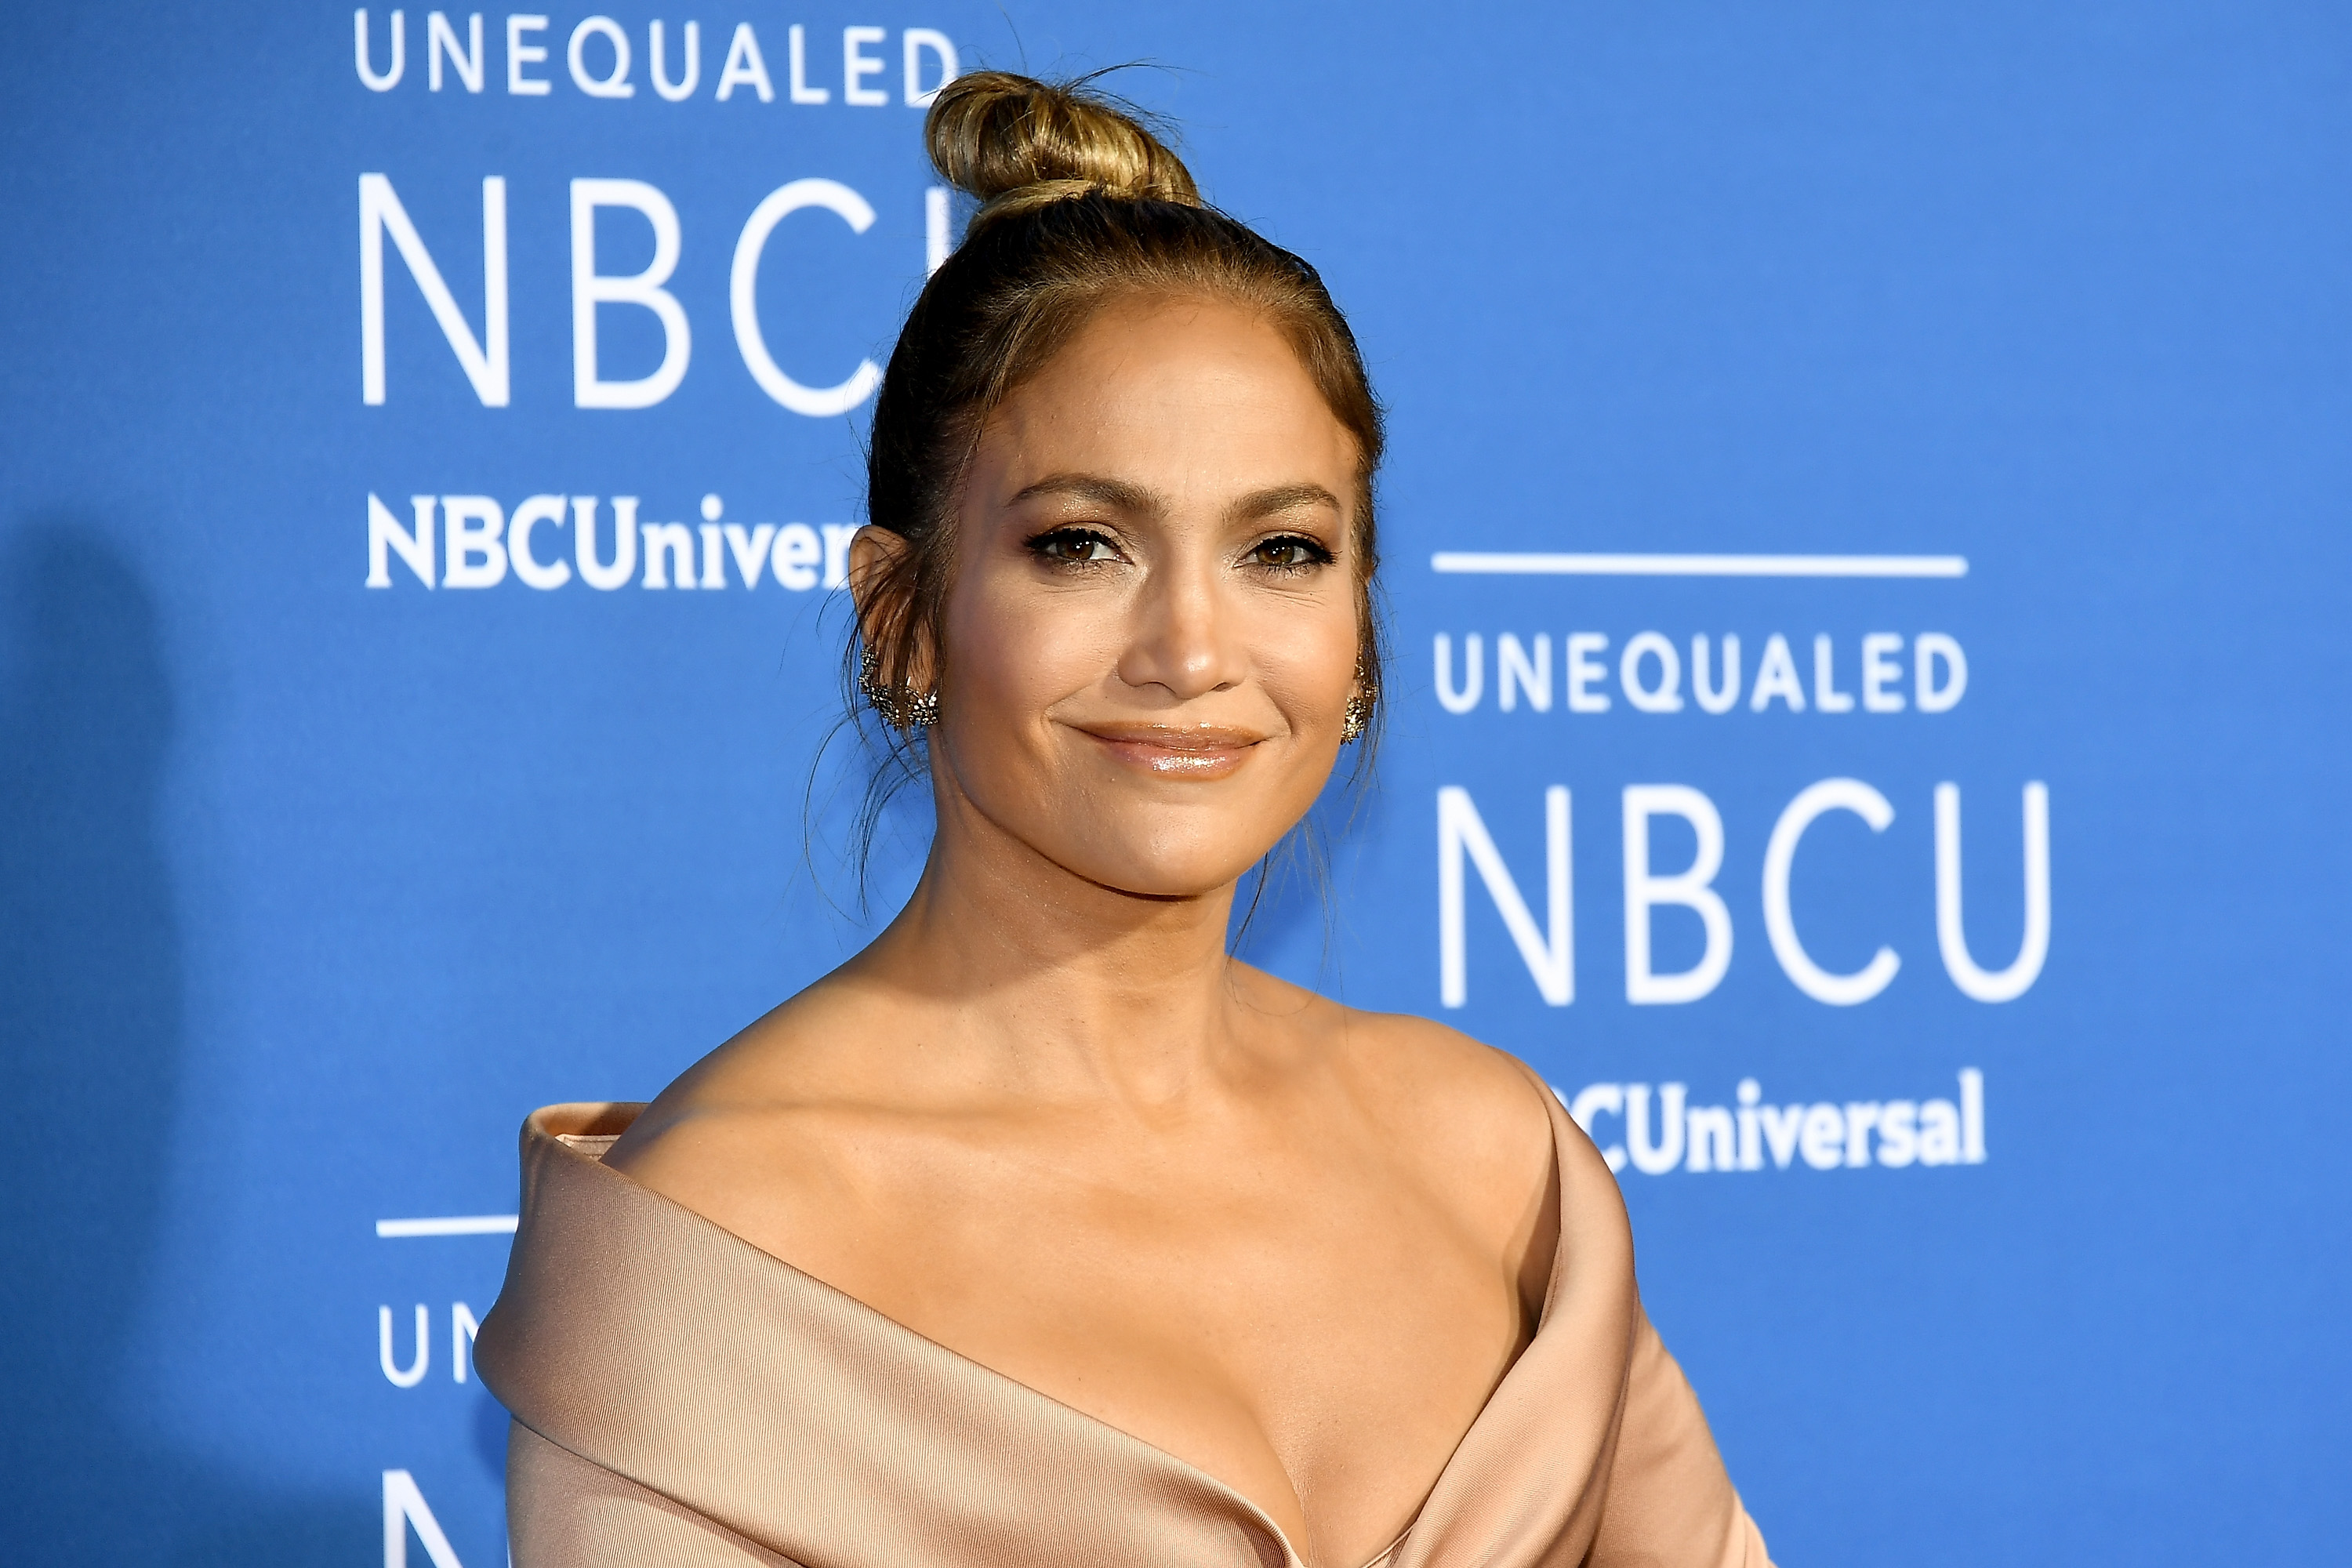 NEW YORK, NY - MAY 15:  Jennifer Lopez attends the 2017 NBCUniversal Upfront at Radio City Music Hall on May 15, 2017 in New York City.  (Photo by Dia Dipasupil/Getty Images)